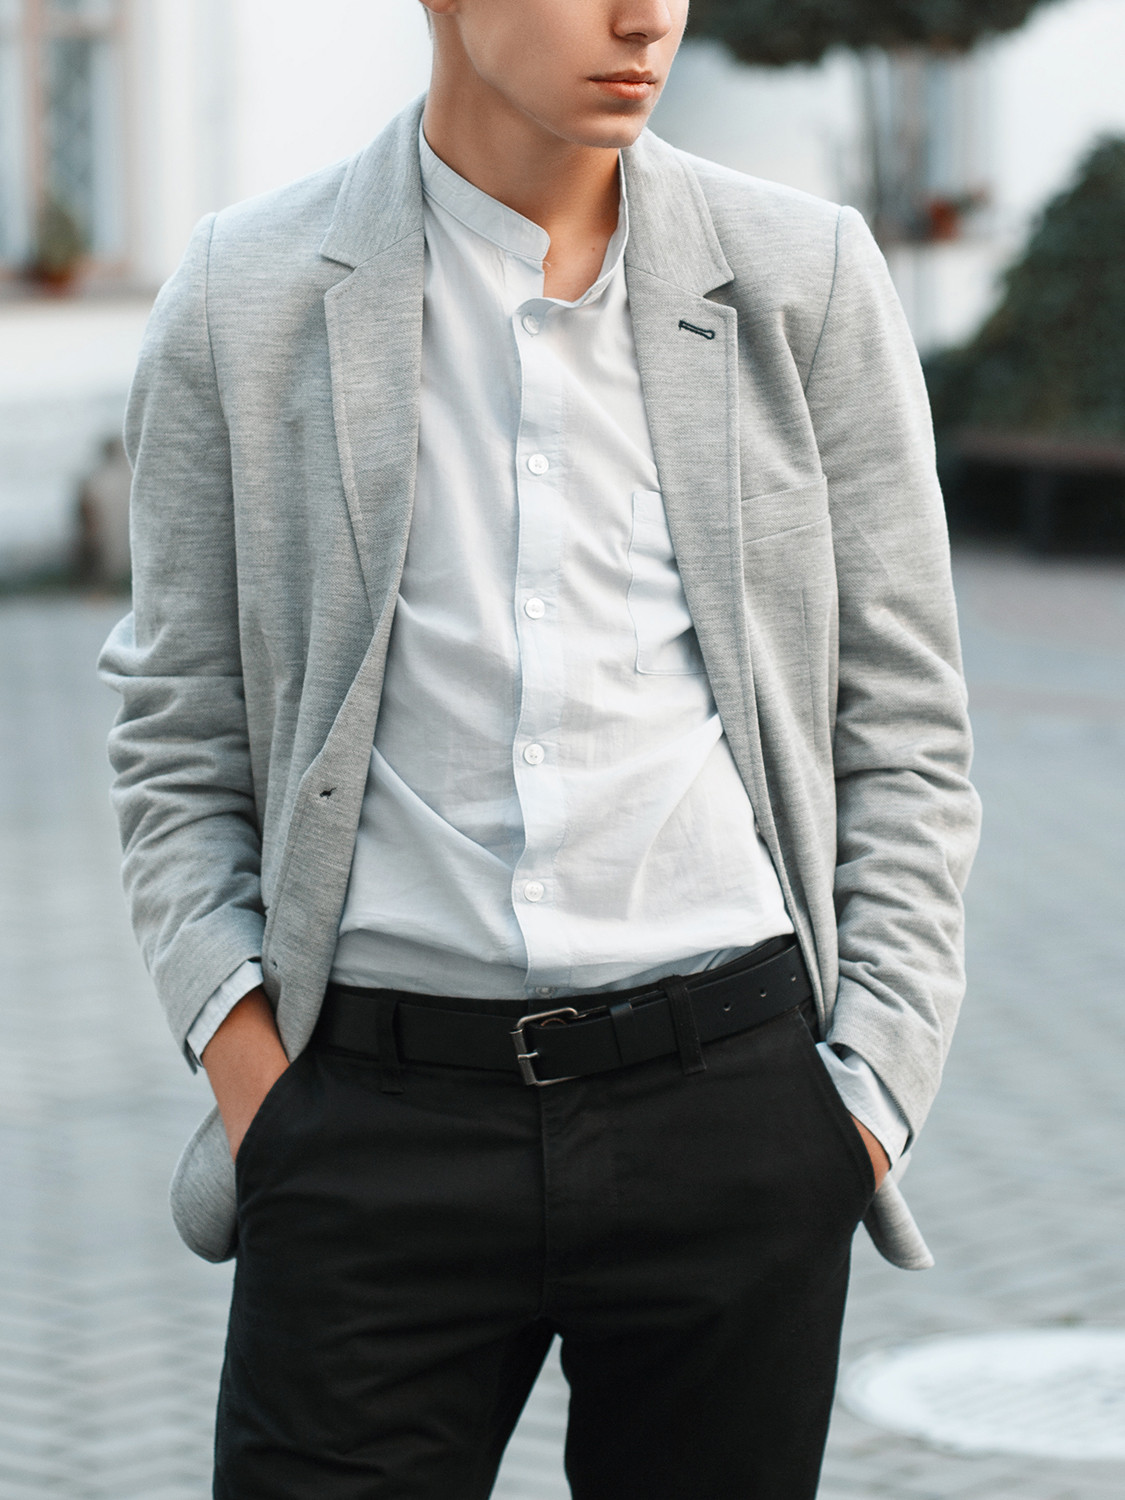 Men's outfit idea for 2021 with grey plain blazer, blue plain casual shirt, black chinos, black chelsea boots. Suitable for spring, summer and autumn.